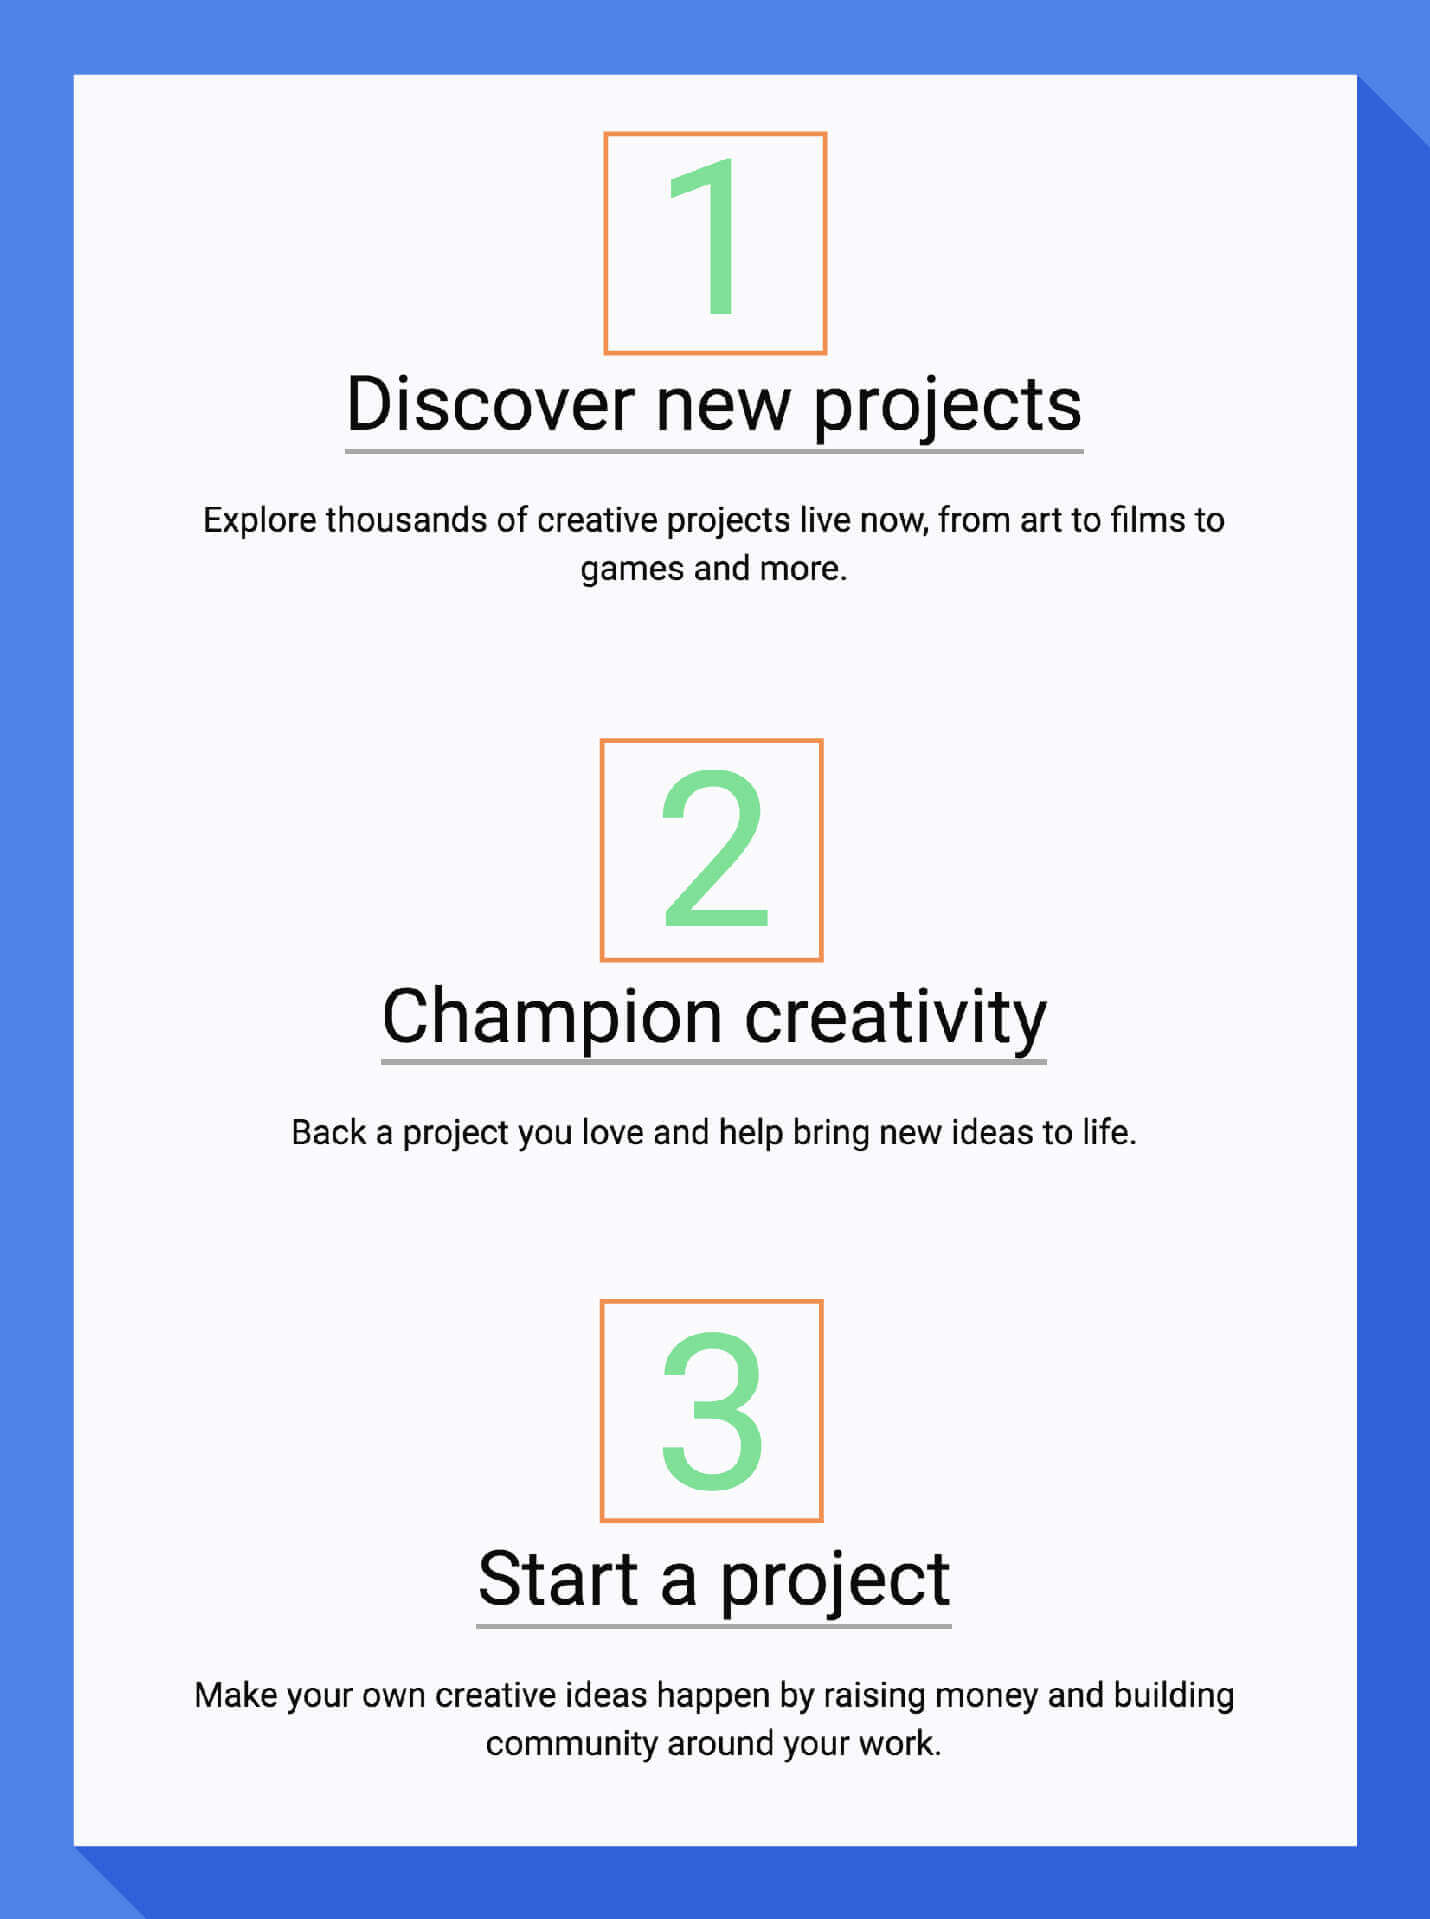 example onboarding steps from kickstarter welcome email